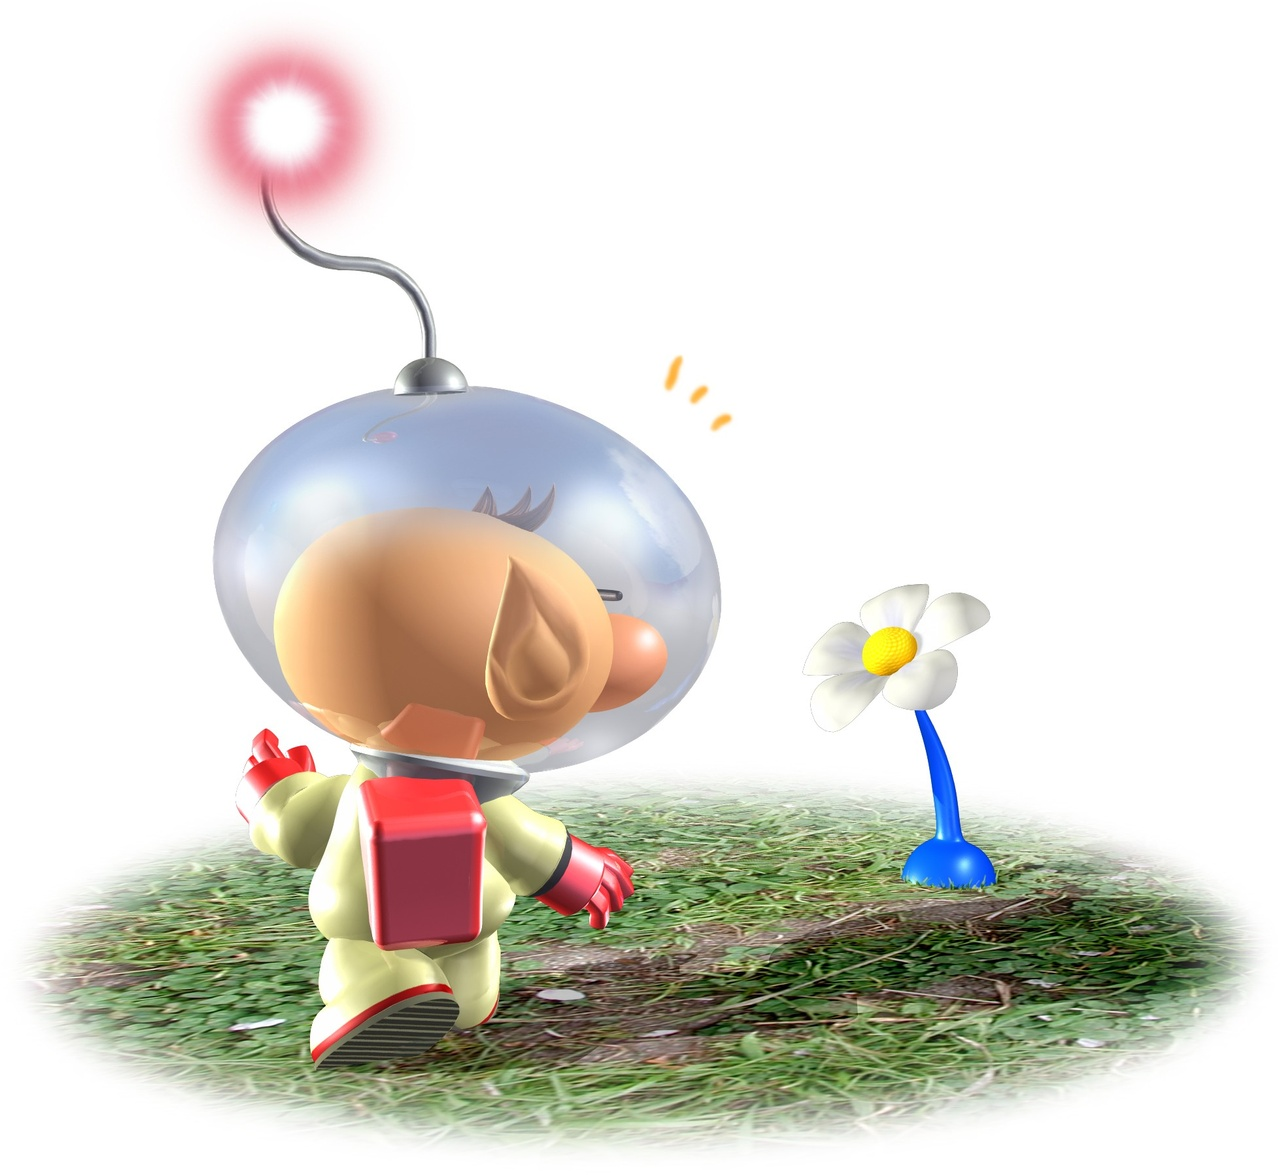 how to get the blue pikmin in pikmin 3